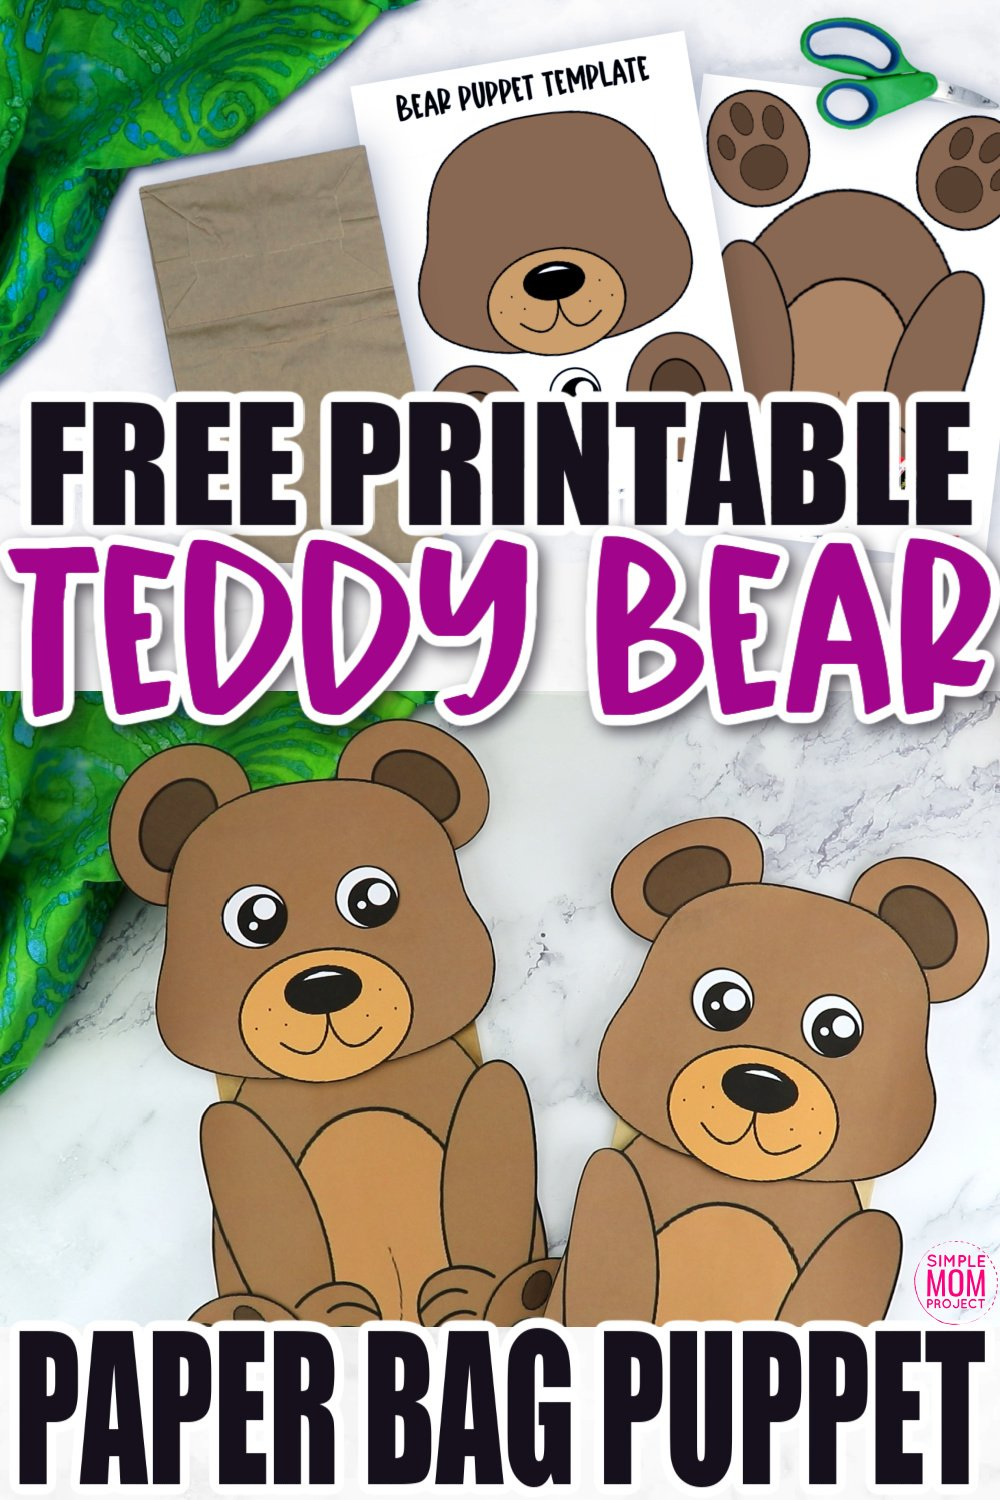 Free Printable Teddy Bear Paper Bag Puppet Template for Kids Preschoolers and toddlers